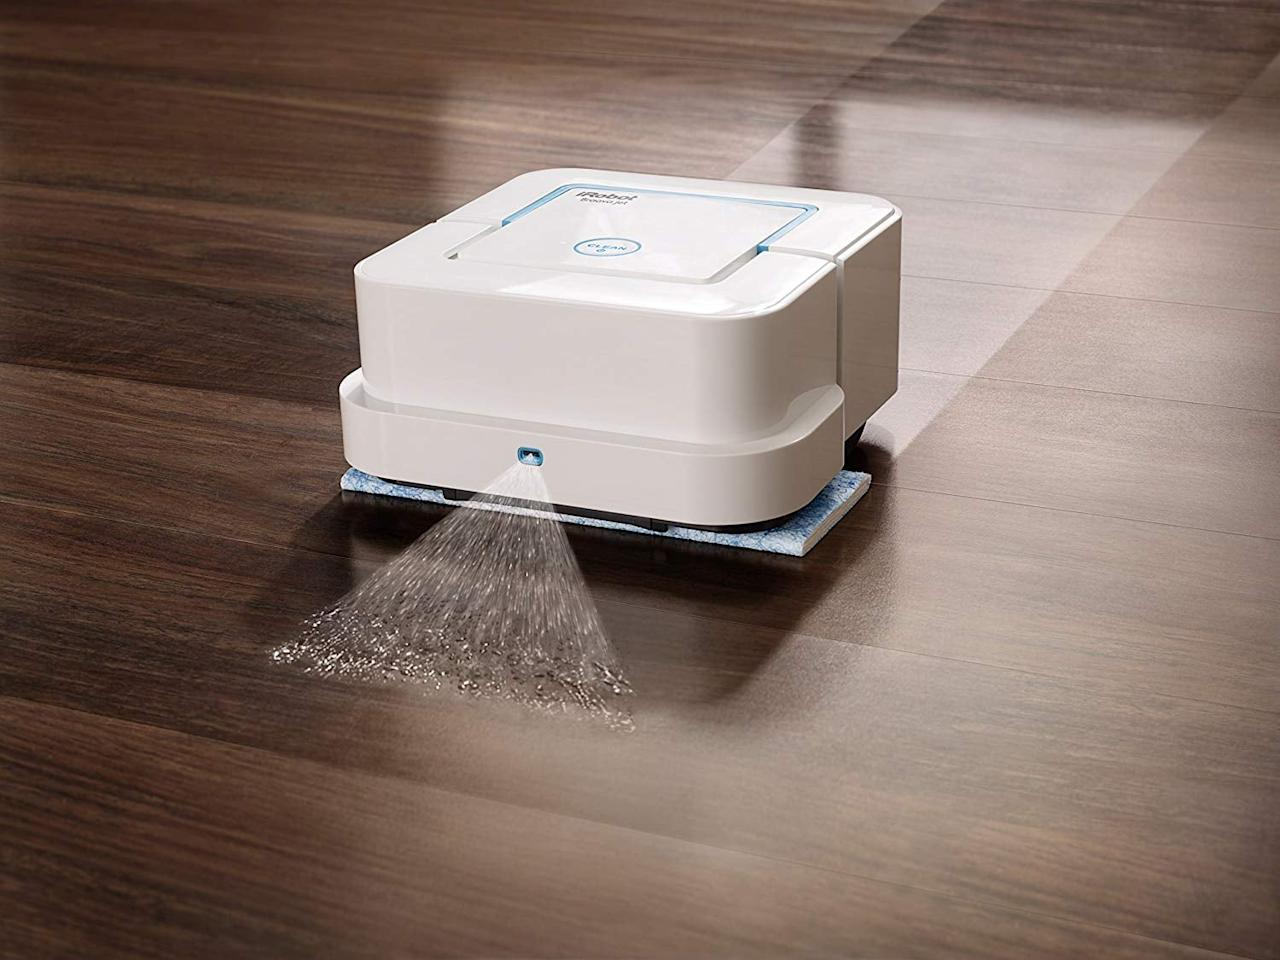 """<p>If you're a fan of the <a href=""""https://www.popsugartech.com/Amazon-Prime-Day-Roomba-Vacuum-Sale-2018-45058517"""" class=""""ga-track"""" data-ga-category=""""Related"""" data-ga-label=""""https://www.popsugar.com/moms/Amazon-Prime-Day-Roomba-Vacuum-Sale-2018-45058517"""" data-ga-action=""""In-Line Links"""">iRobot Vacuum</a>, then you'll want to give this <a href=""""https://www.popsugar.com/buy/iRobot-Braava-Jet-240-Robot-Mop-402779?p_name=iRobot%20Braava%20Jet%20240%20Robot%20Mop&retailer=amazon.com&pid=402779&price=170&evar1=geek%3Aus&evar9=45708741&evar98=https%3A%2F%2Fwww.popsugartech.com%2Fphoto-gallery%2F45708741%2Fimage%2F45708803%2FiRobot-Braava-Jet-240-Robot-Mop&list1=shopping%2Camazon%2Cgadgets%2Ctech%20shopping%2Chome%20shopping&prop13=mobile&pdata=1"""" rel=""""nofollow"""" data-shoppable-link=""""1"""" target=""""_blank"""" class=""""ga-track"""" data-ga-category=""""Related"""" data-ga-label=""""https://www.amazon.com/iRobot-Braava-jet-240-Robot/dp/B019OH9898?ref_=bl_dp_s_web_2594102011"""" data-ga-action=""""In-Line Links"""">iRobot Braava Jet 240 Robot Mop</a> ($170, originally $199) a try. It will clean your floors when you're not around, so you have nothing to worry about later.</p>"""